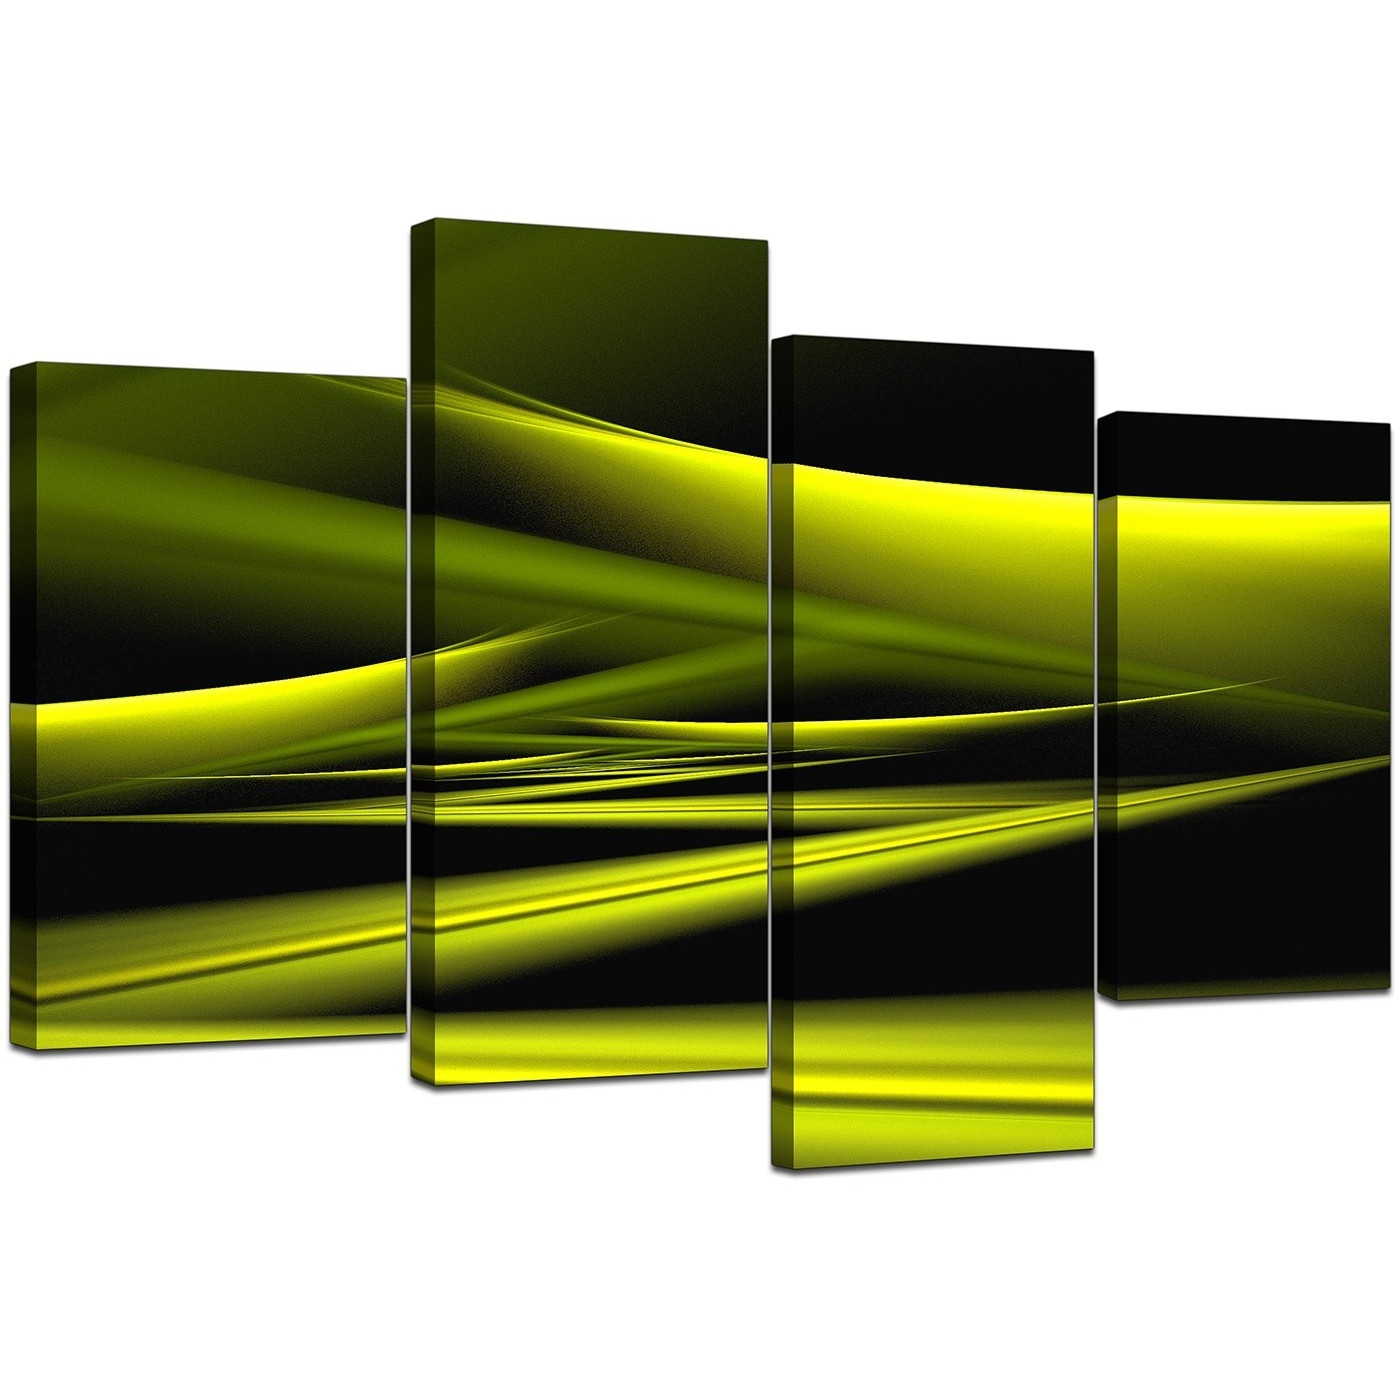 Abstract Canvas Pictures In Green For Your Living Room – Set Of 4 In Most Recent Lime Green Canvas Wall Art (View 4 of 15)